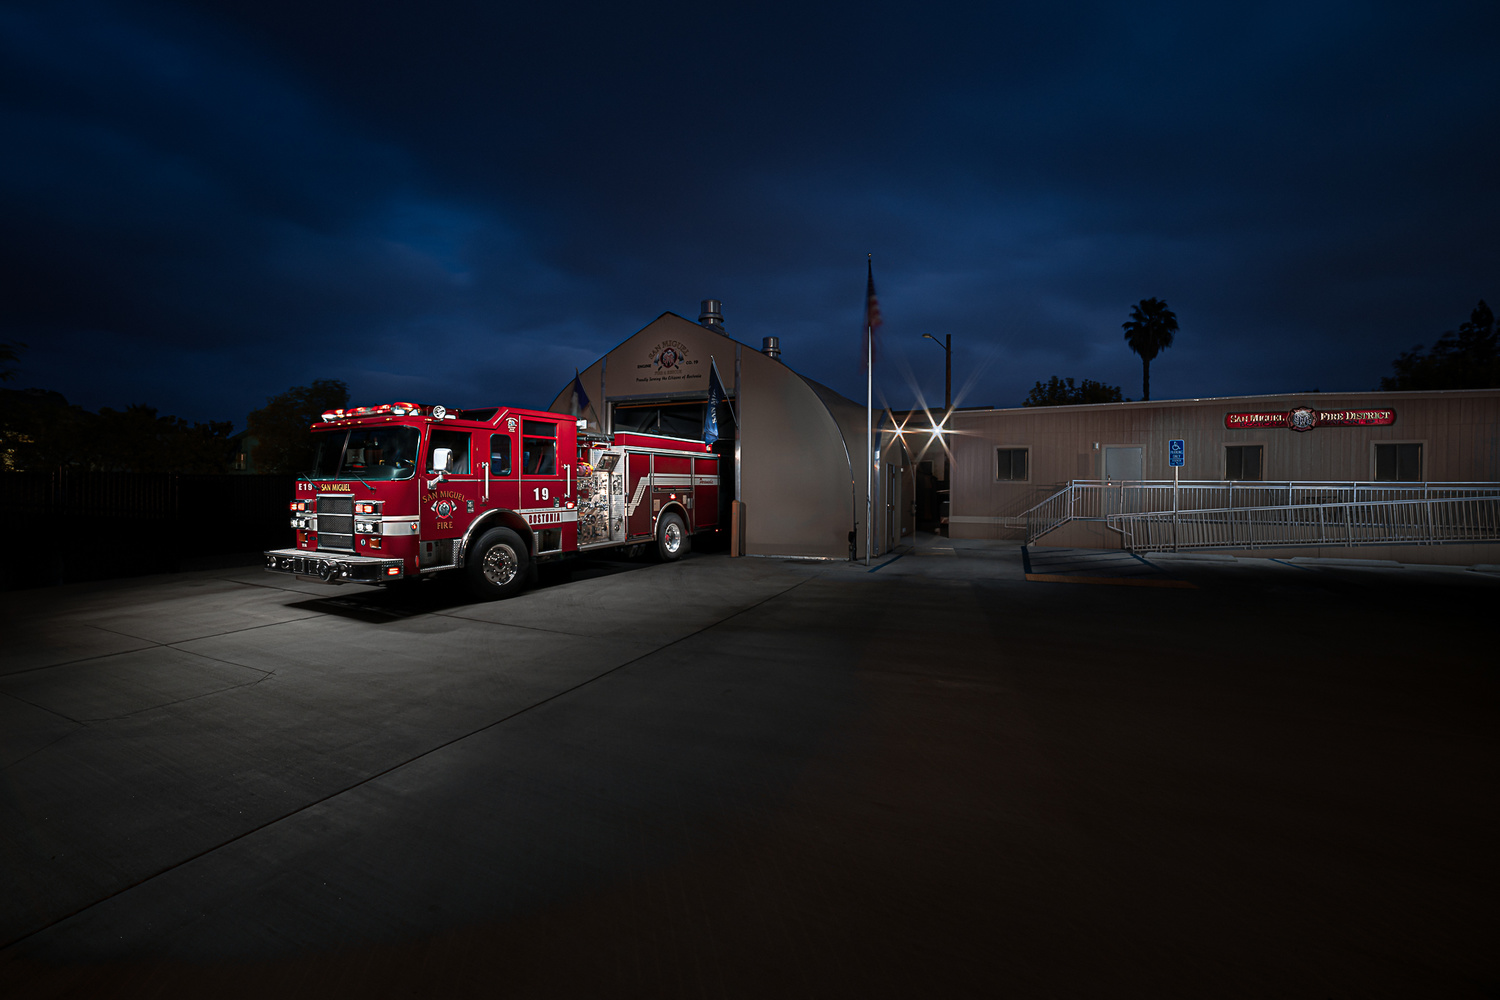 San Miguel Fire Station 19, Bostonia by Creigh McIntyre